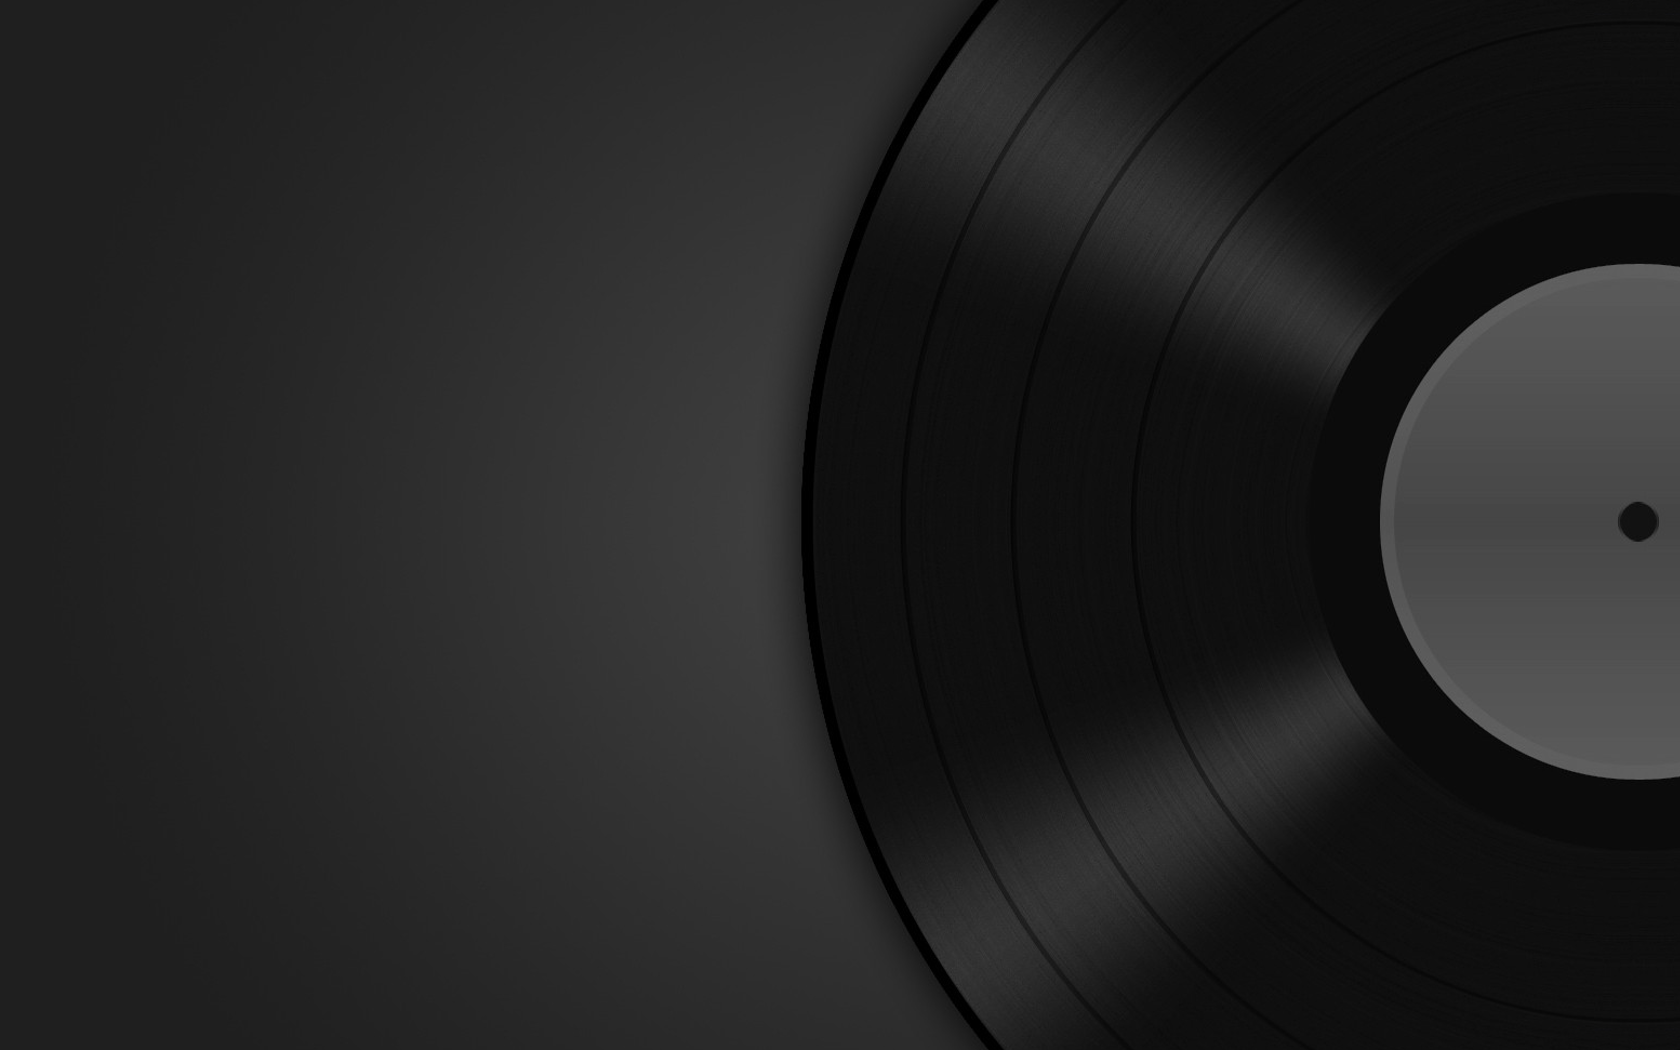 Vinyl Wallpaper and Background Image 1680x1050 ID598655 1680x1050